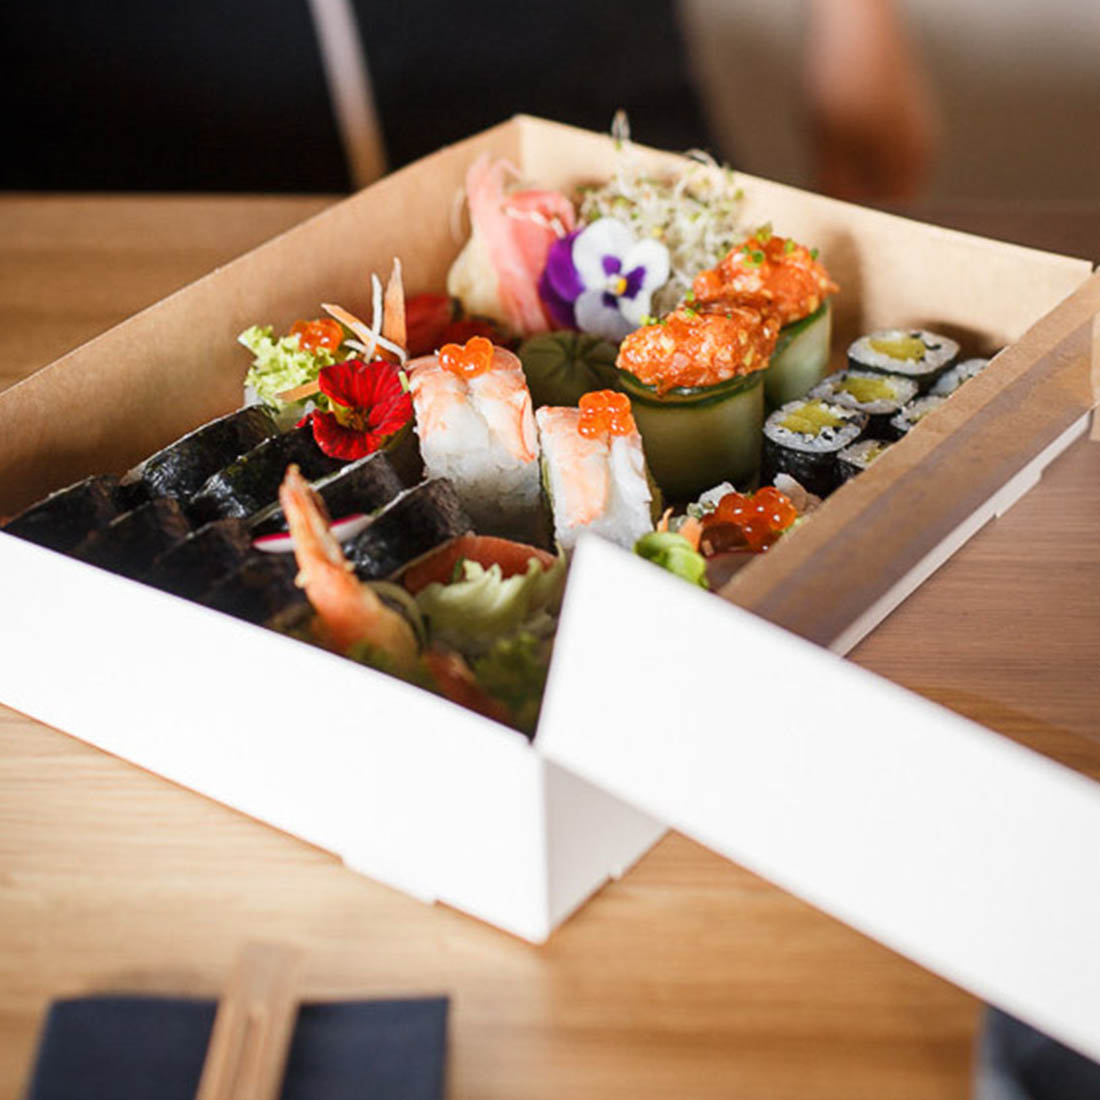 The packaging in which you serve sushi has a big impact on customer responses.